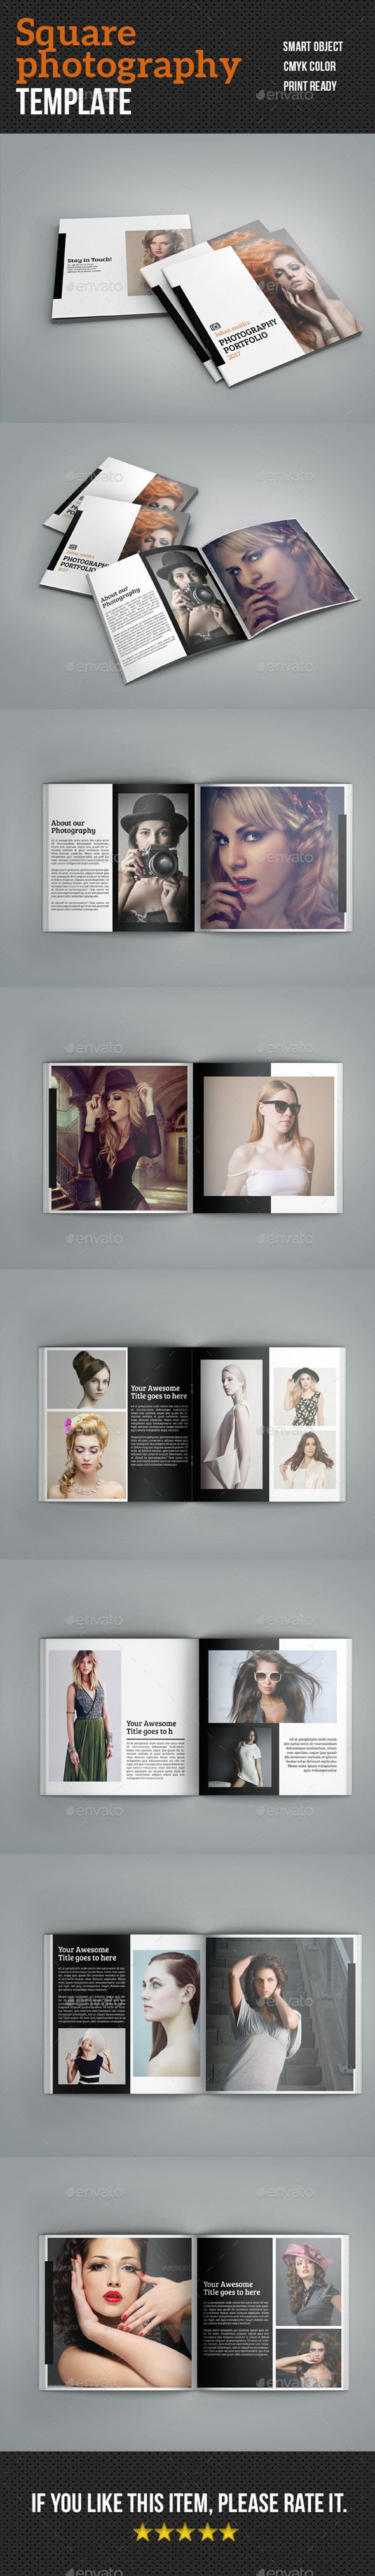 Square Photography Brochure - #Corporate #Brochures Download here: https://graphicriver.net/item/square-photography-brochure/19476520?ref=alena994